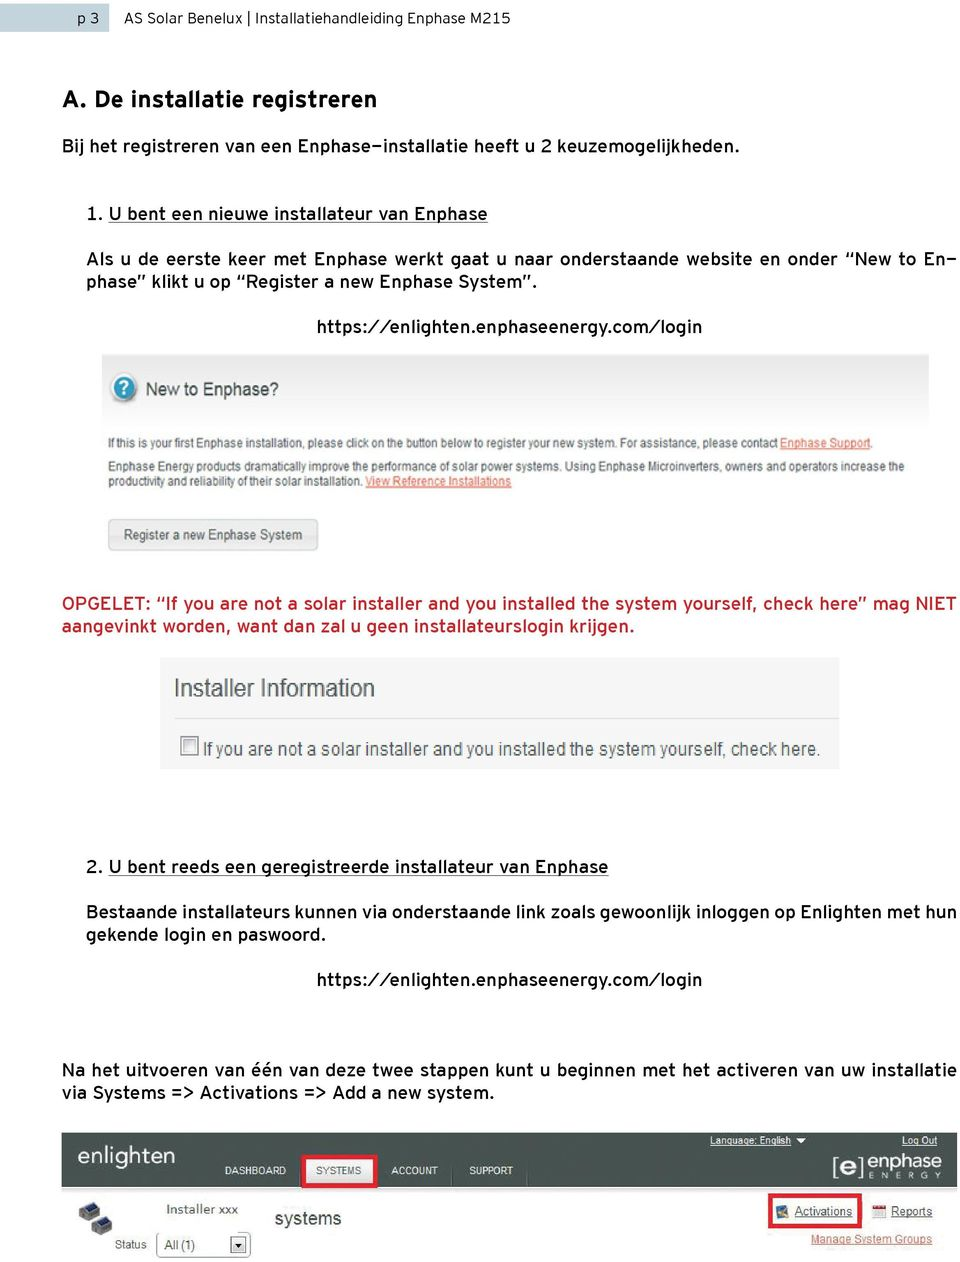 enphaseenergy.com/login OPGELET: If you are not a solar installer and you installed the system yourself, check here mag NIET aangevinkt worden, want dan zal u geen installateurslogin krijgen. 2.